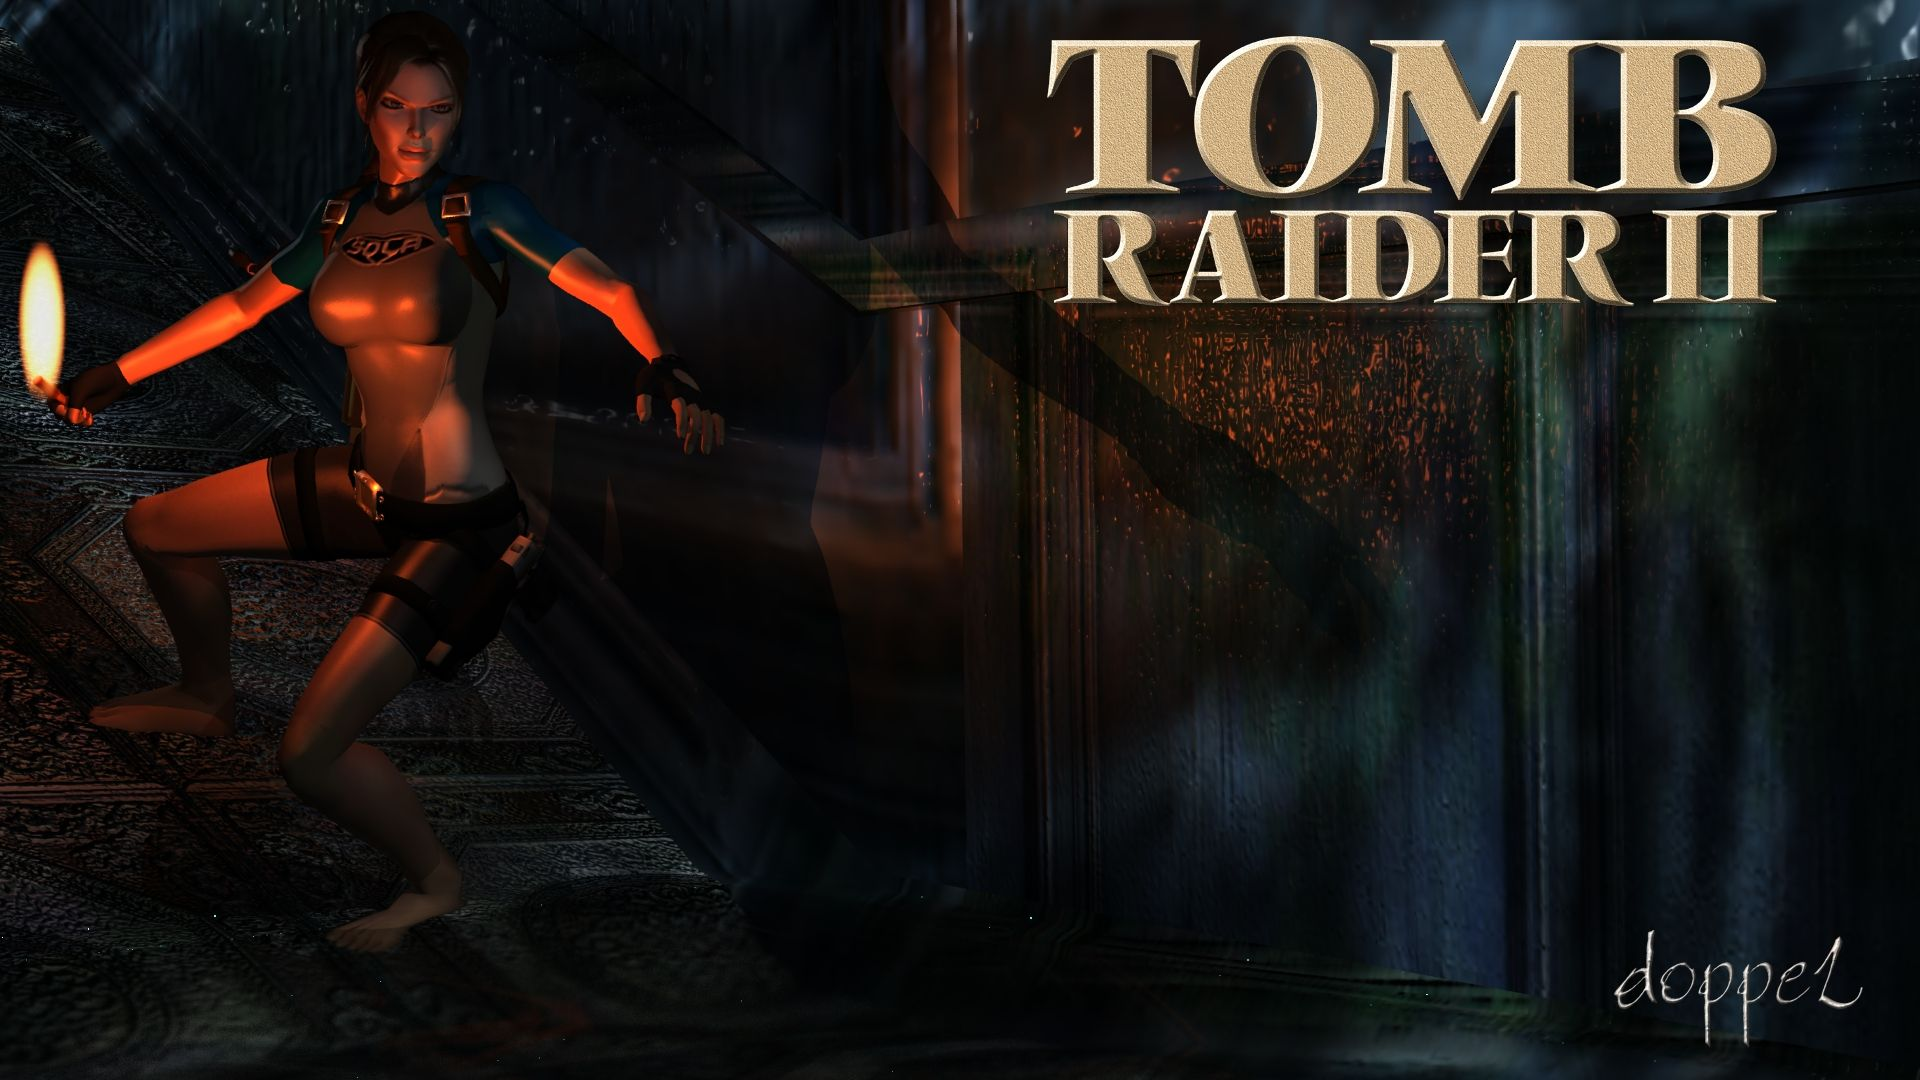 TOMB RAIDER 2 iOS/APK Version Full Game Free Download